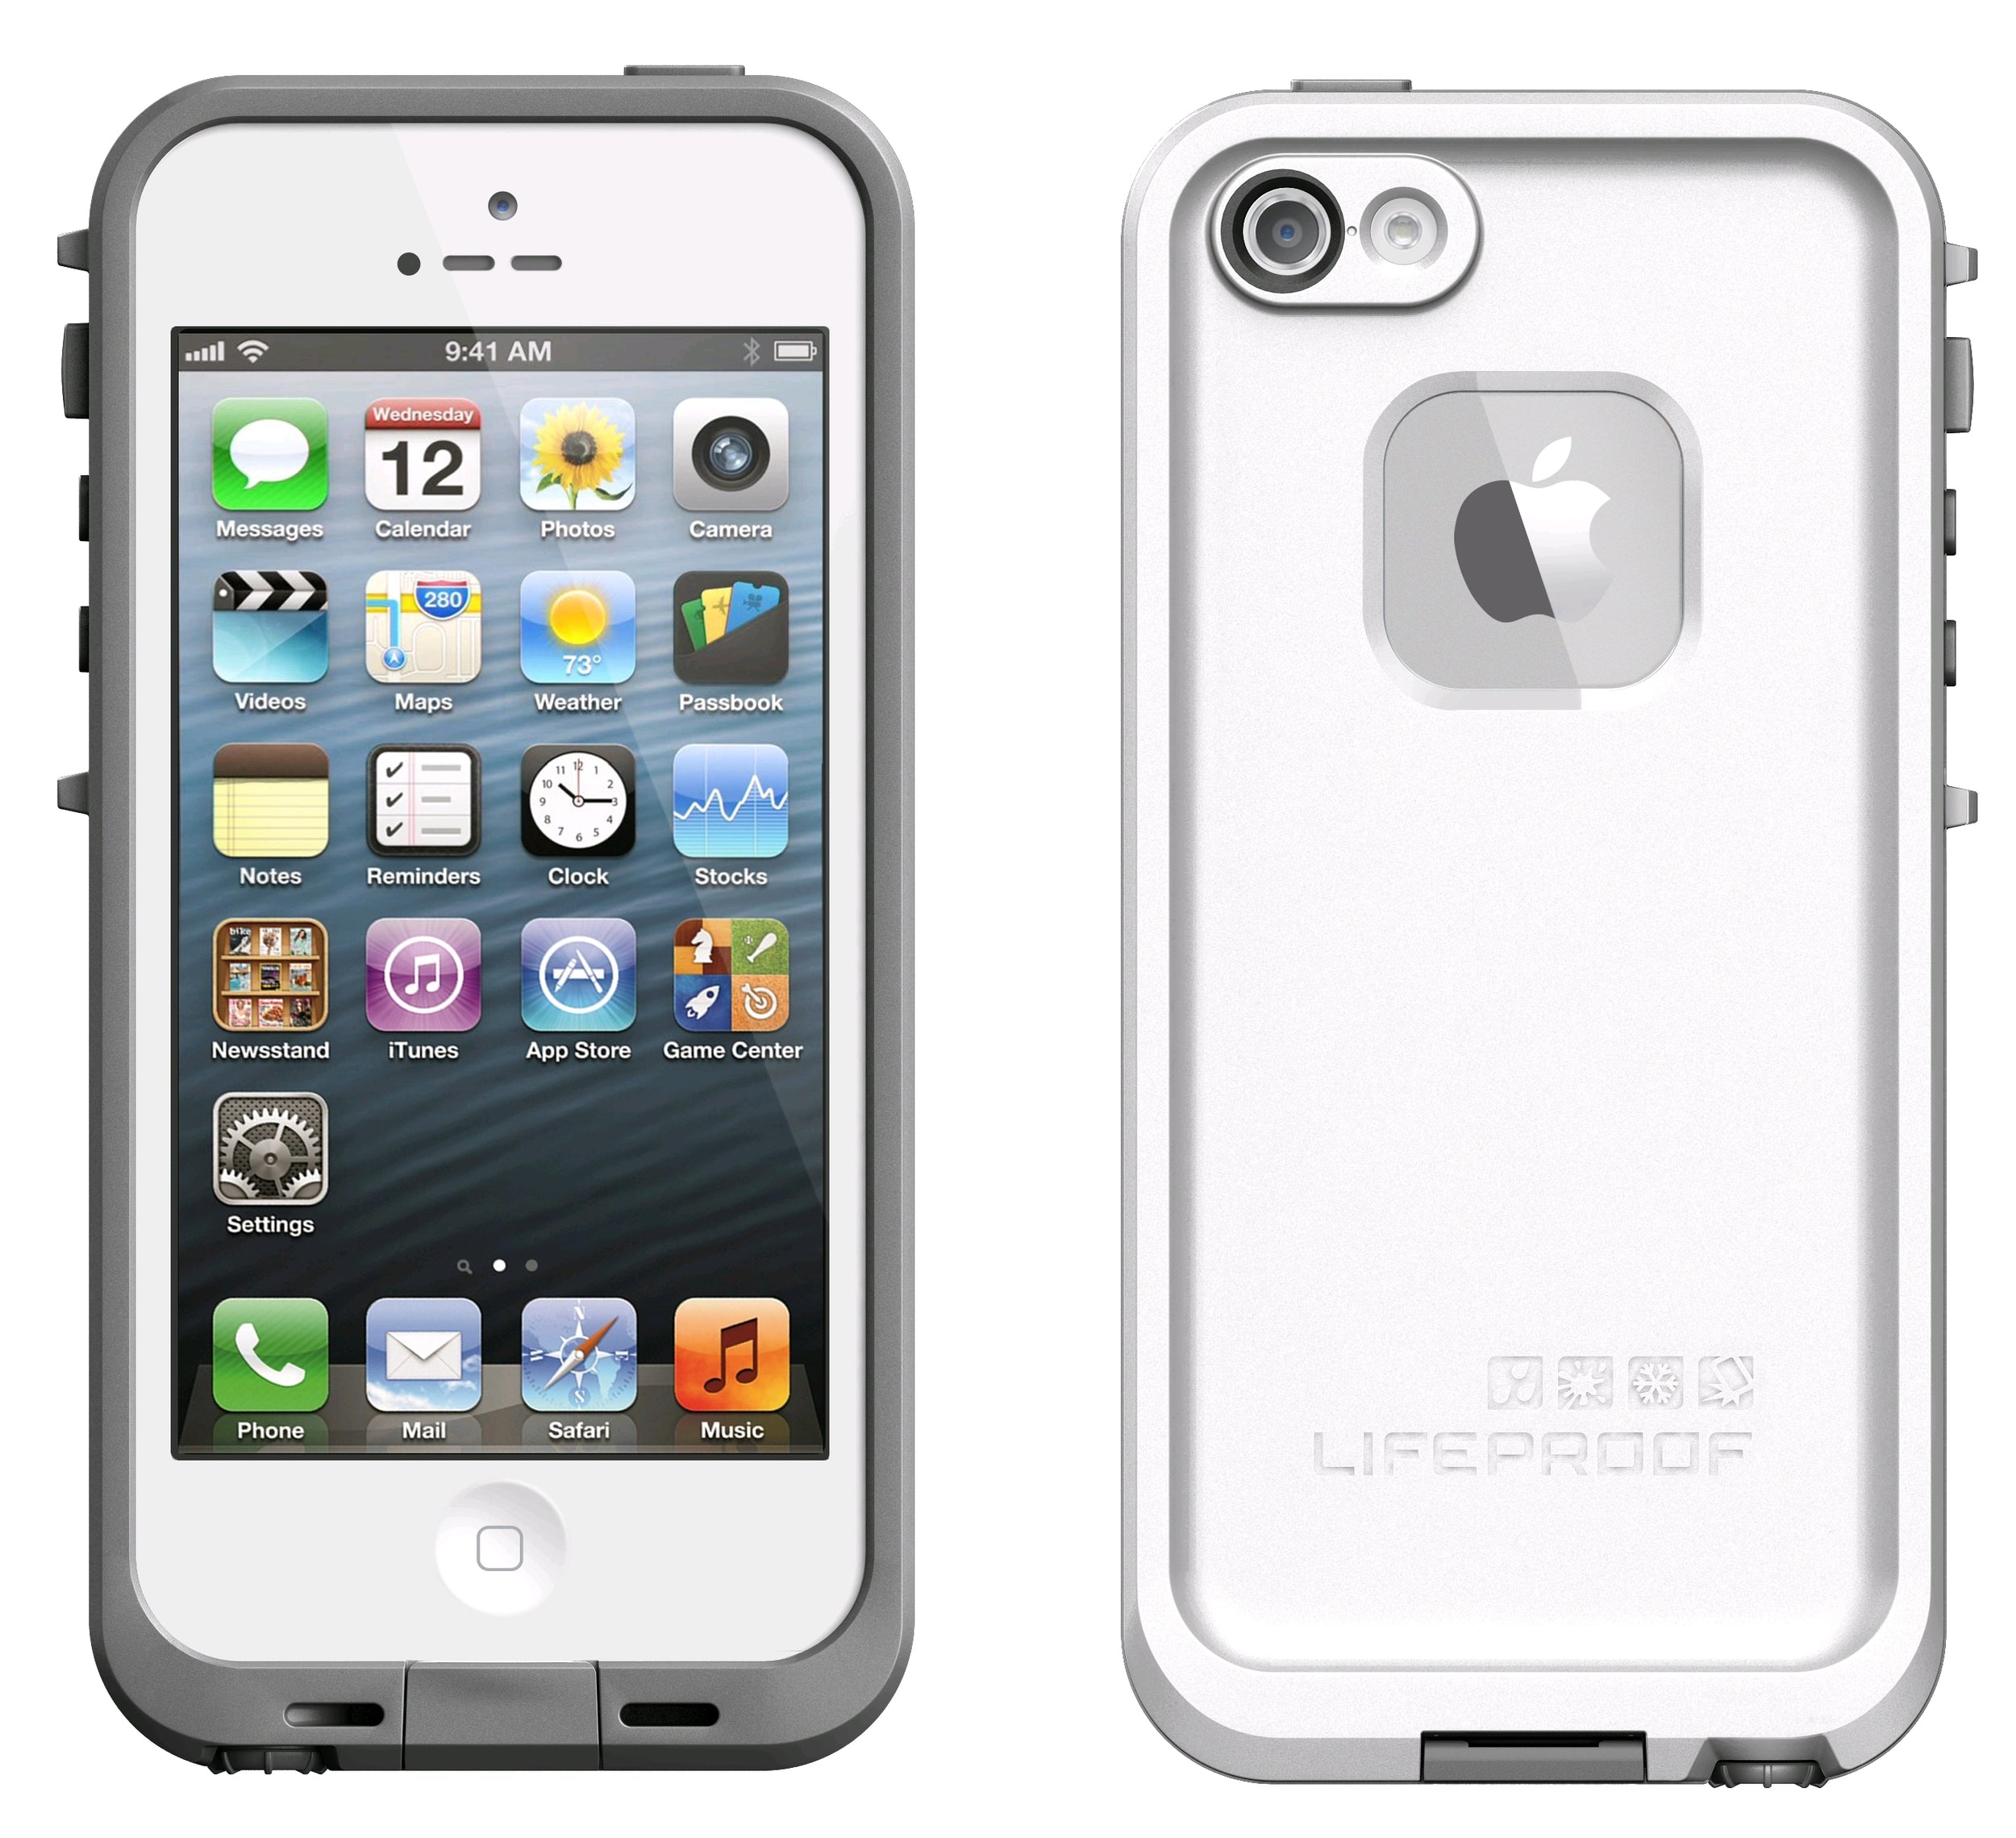 Credits: http://images.store.orange.com/b/lifeproof-case-for-iphone-5-white-250182.jpg